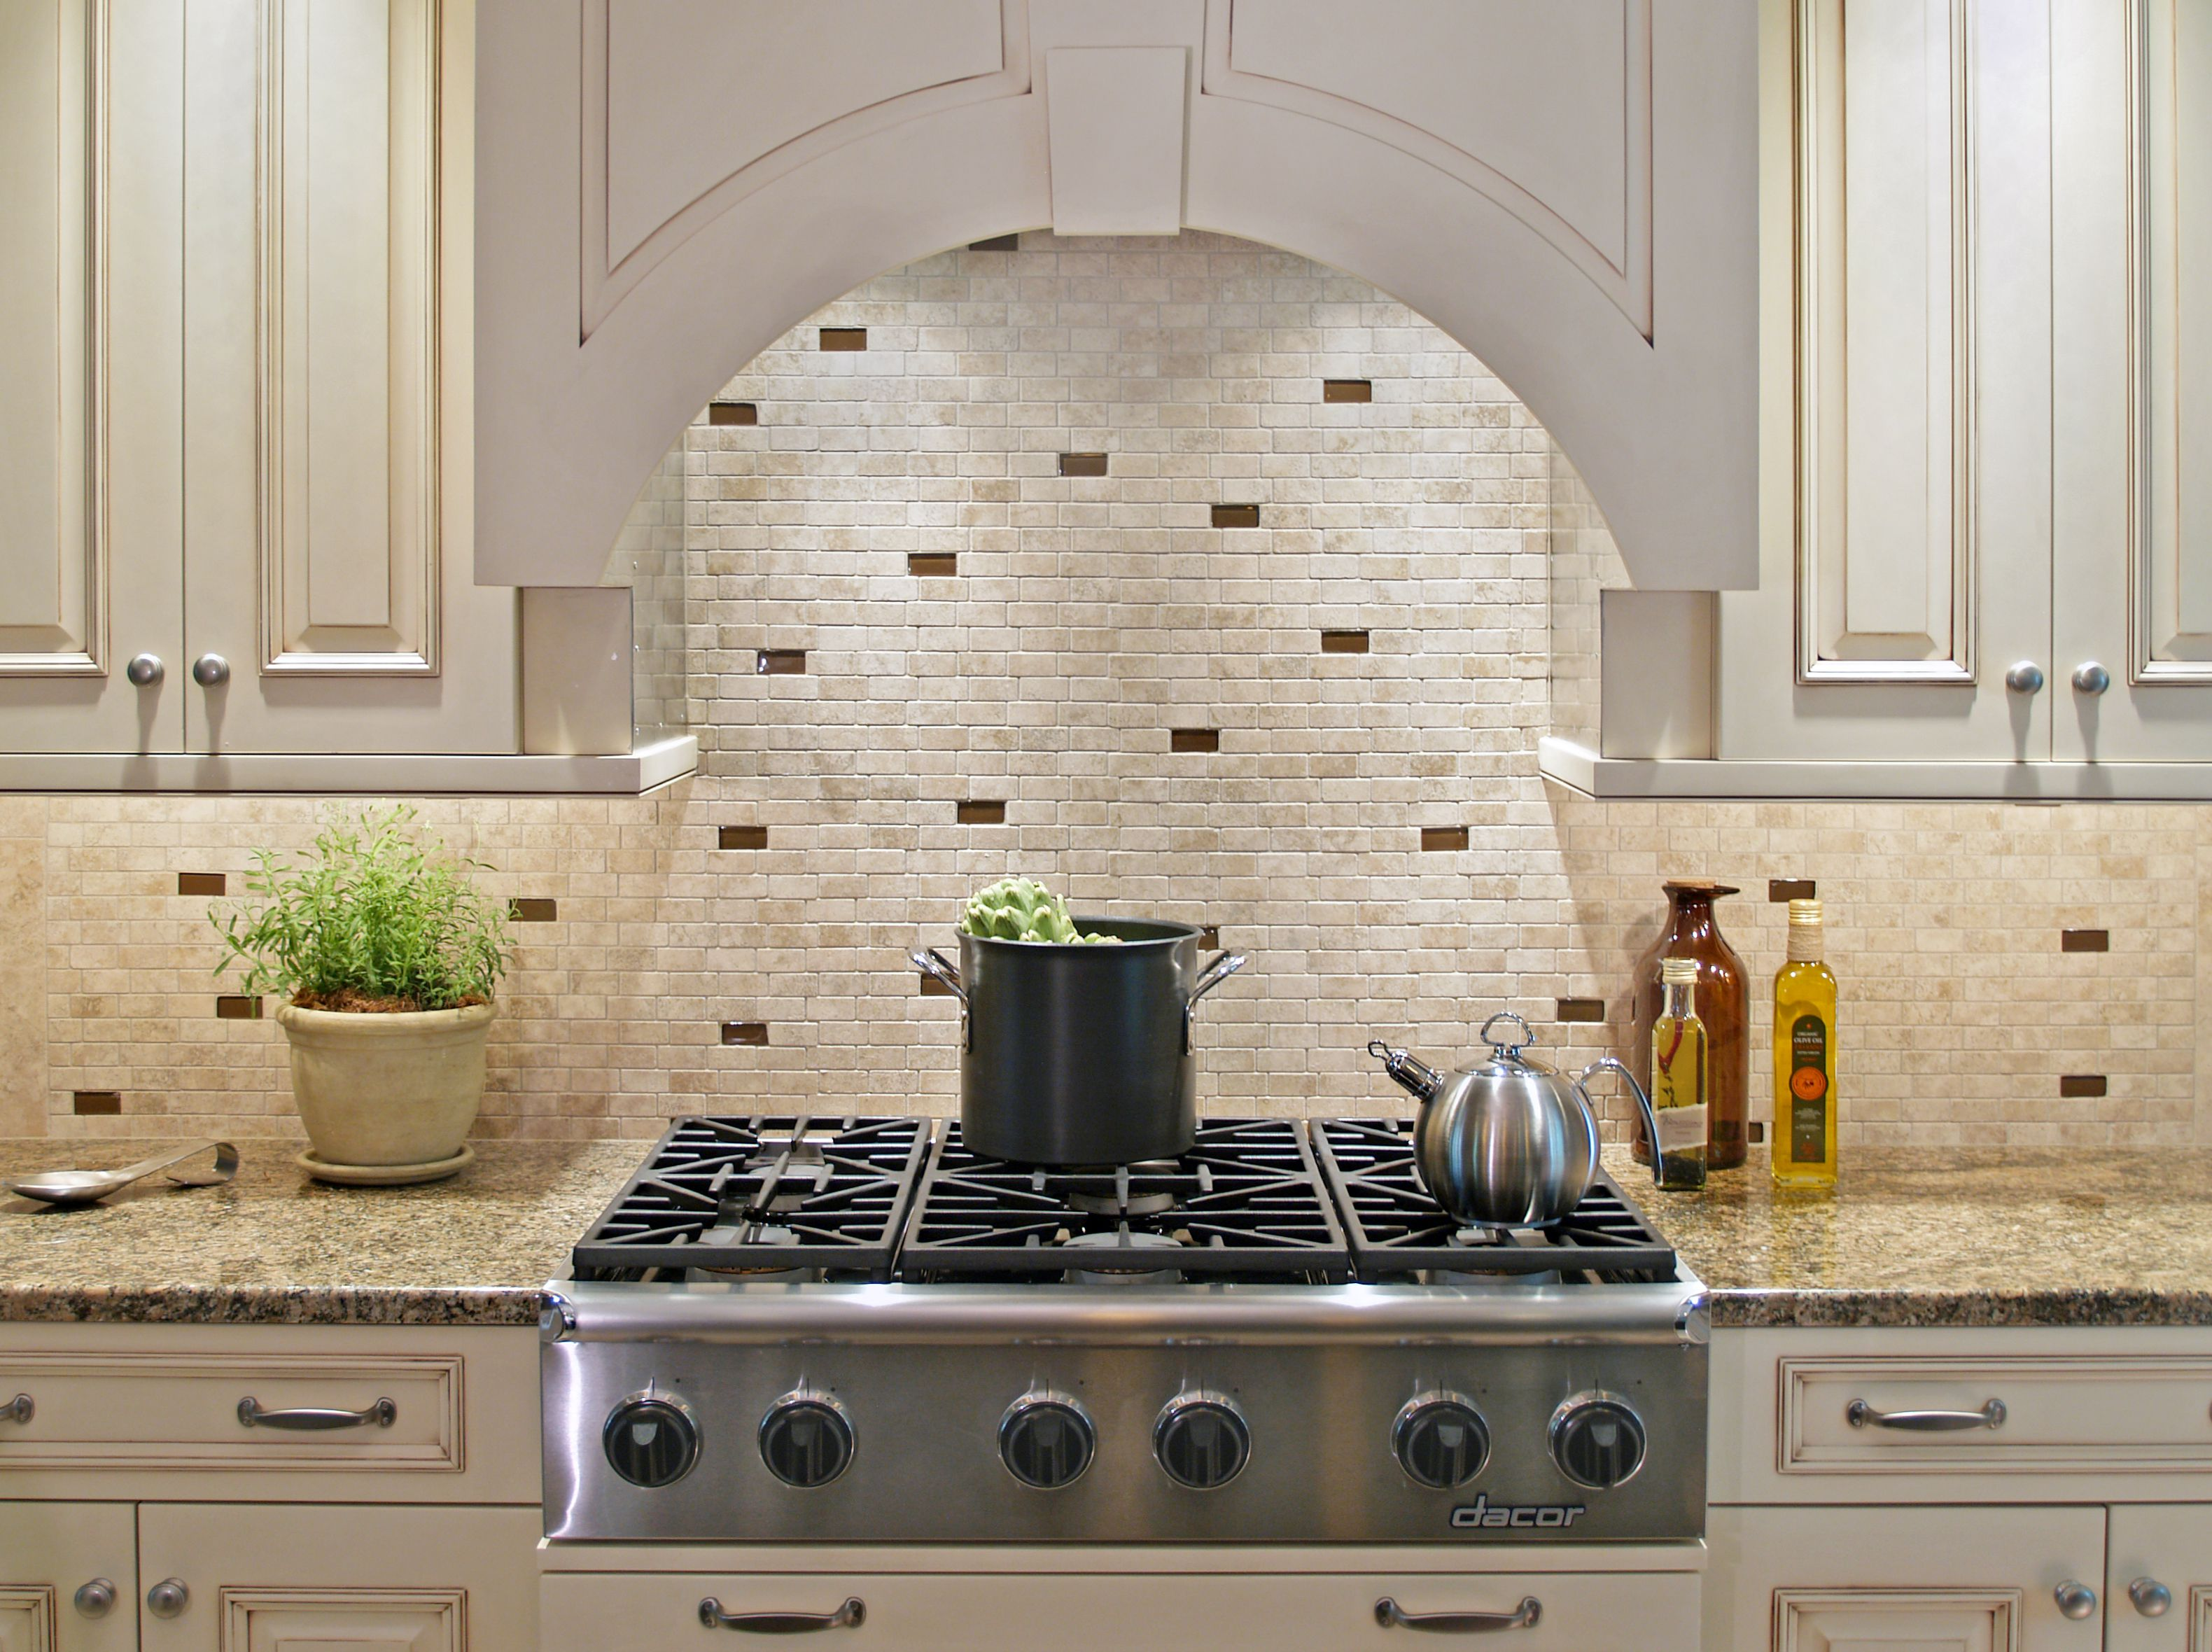 - Beautiful Tile Backsplash Ideas For Your Kitchen - Artmakehome